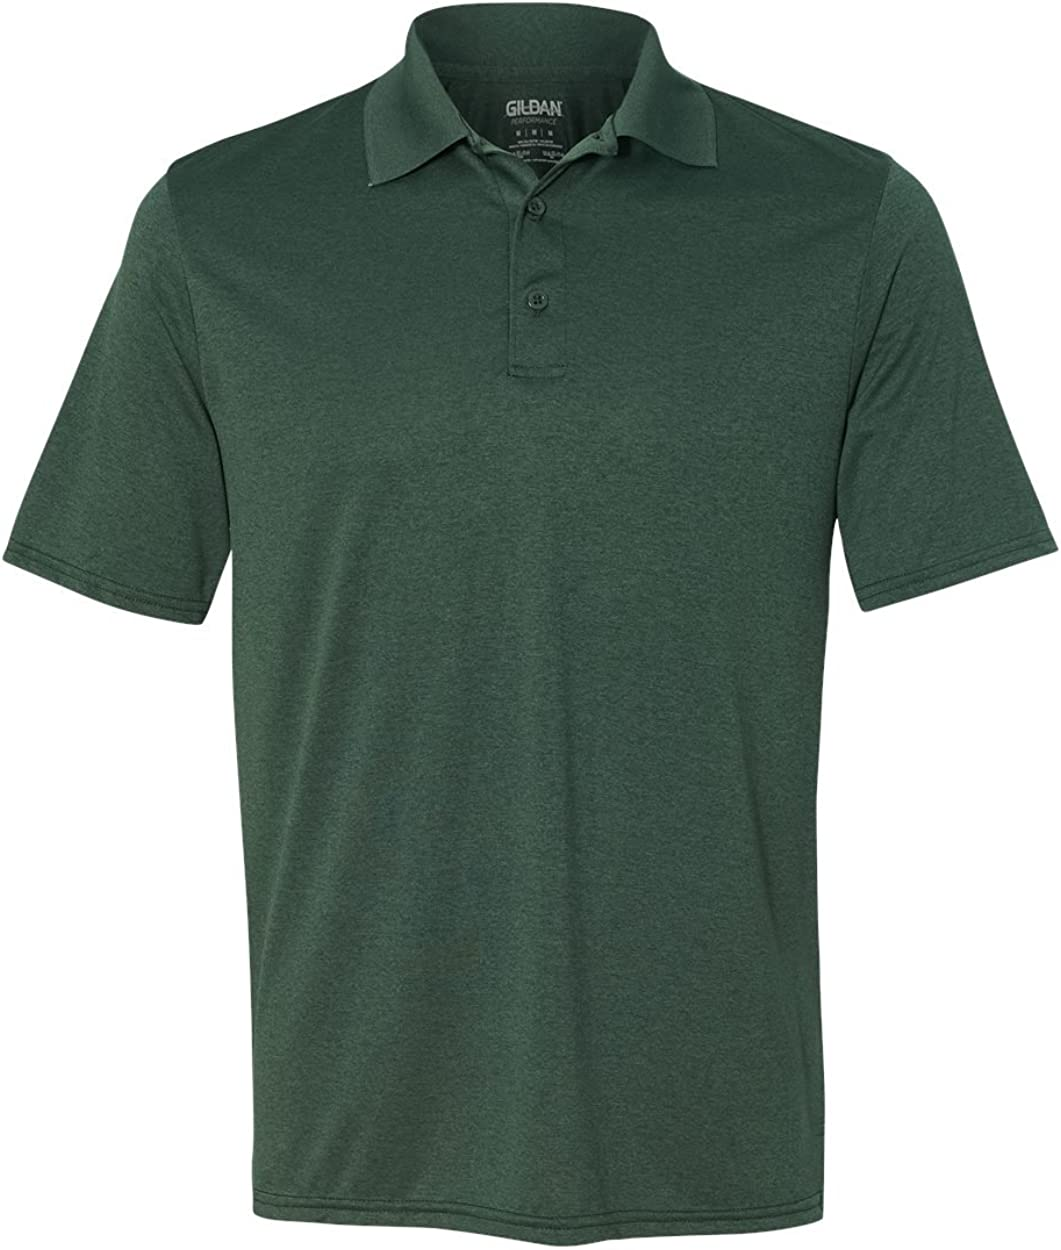 Performance 4.7 oz. Jersey Polo (G448) Marble Forst Green, 2XL (Pack of 12)